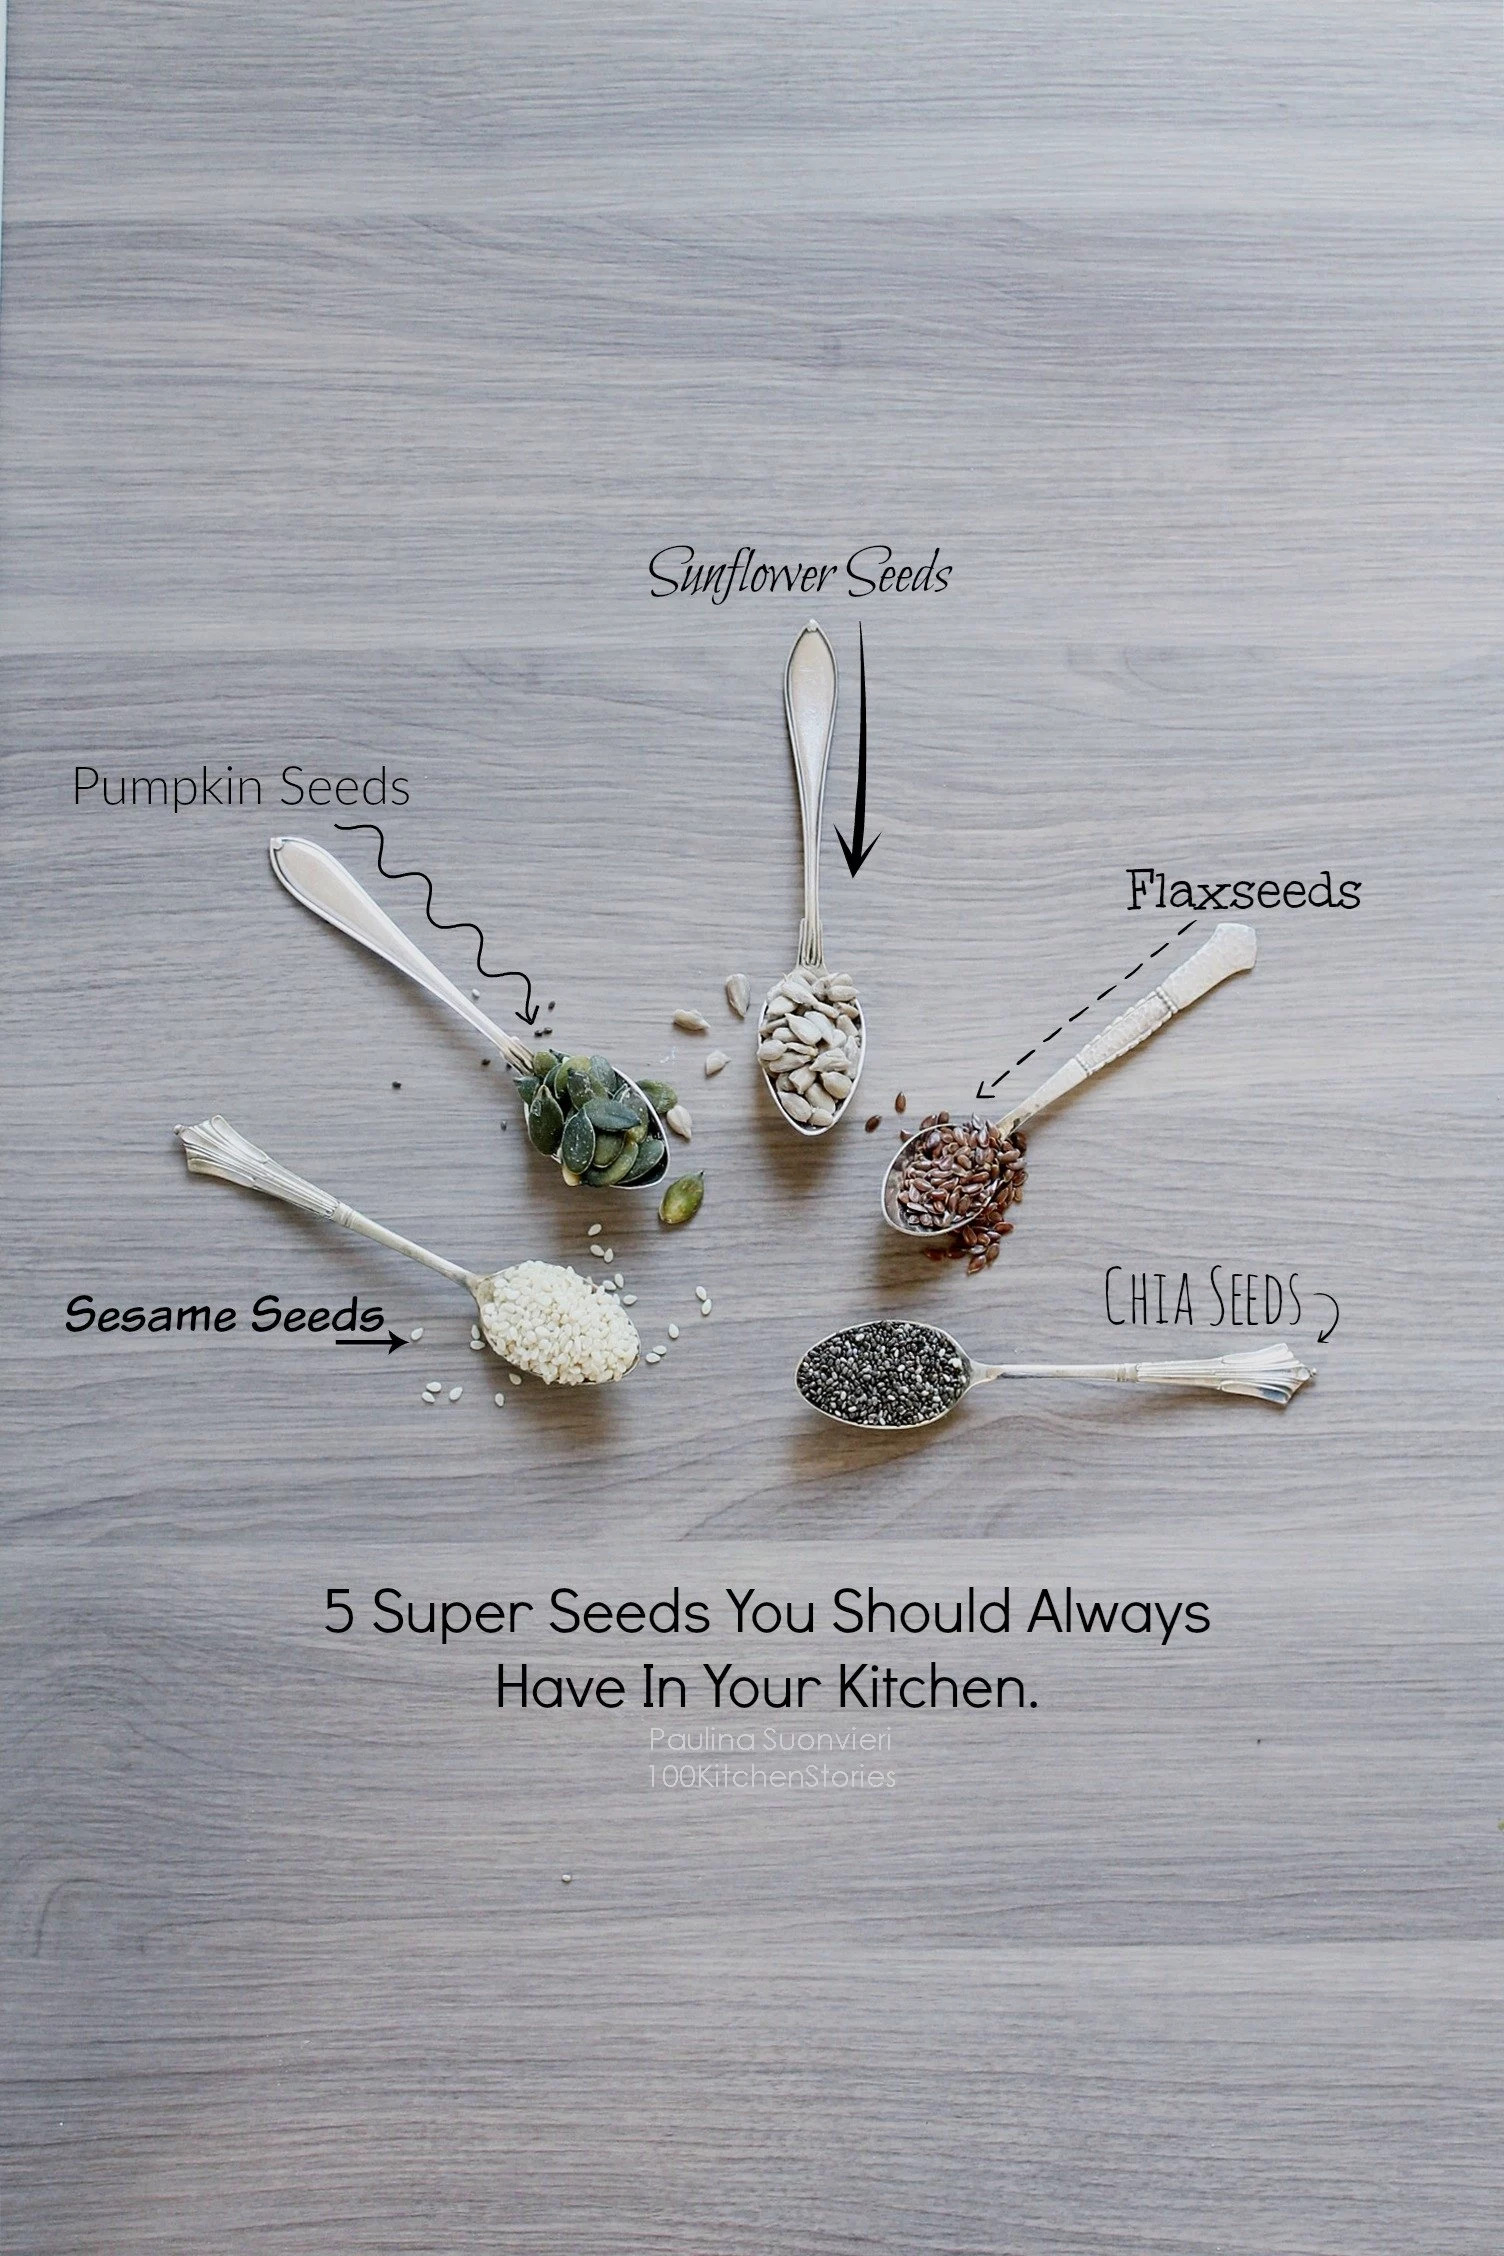 5 Super Seeds You Should Always Have In Your Kitchen.